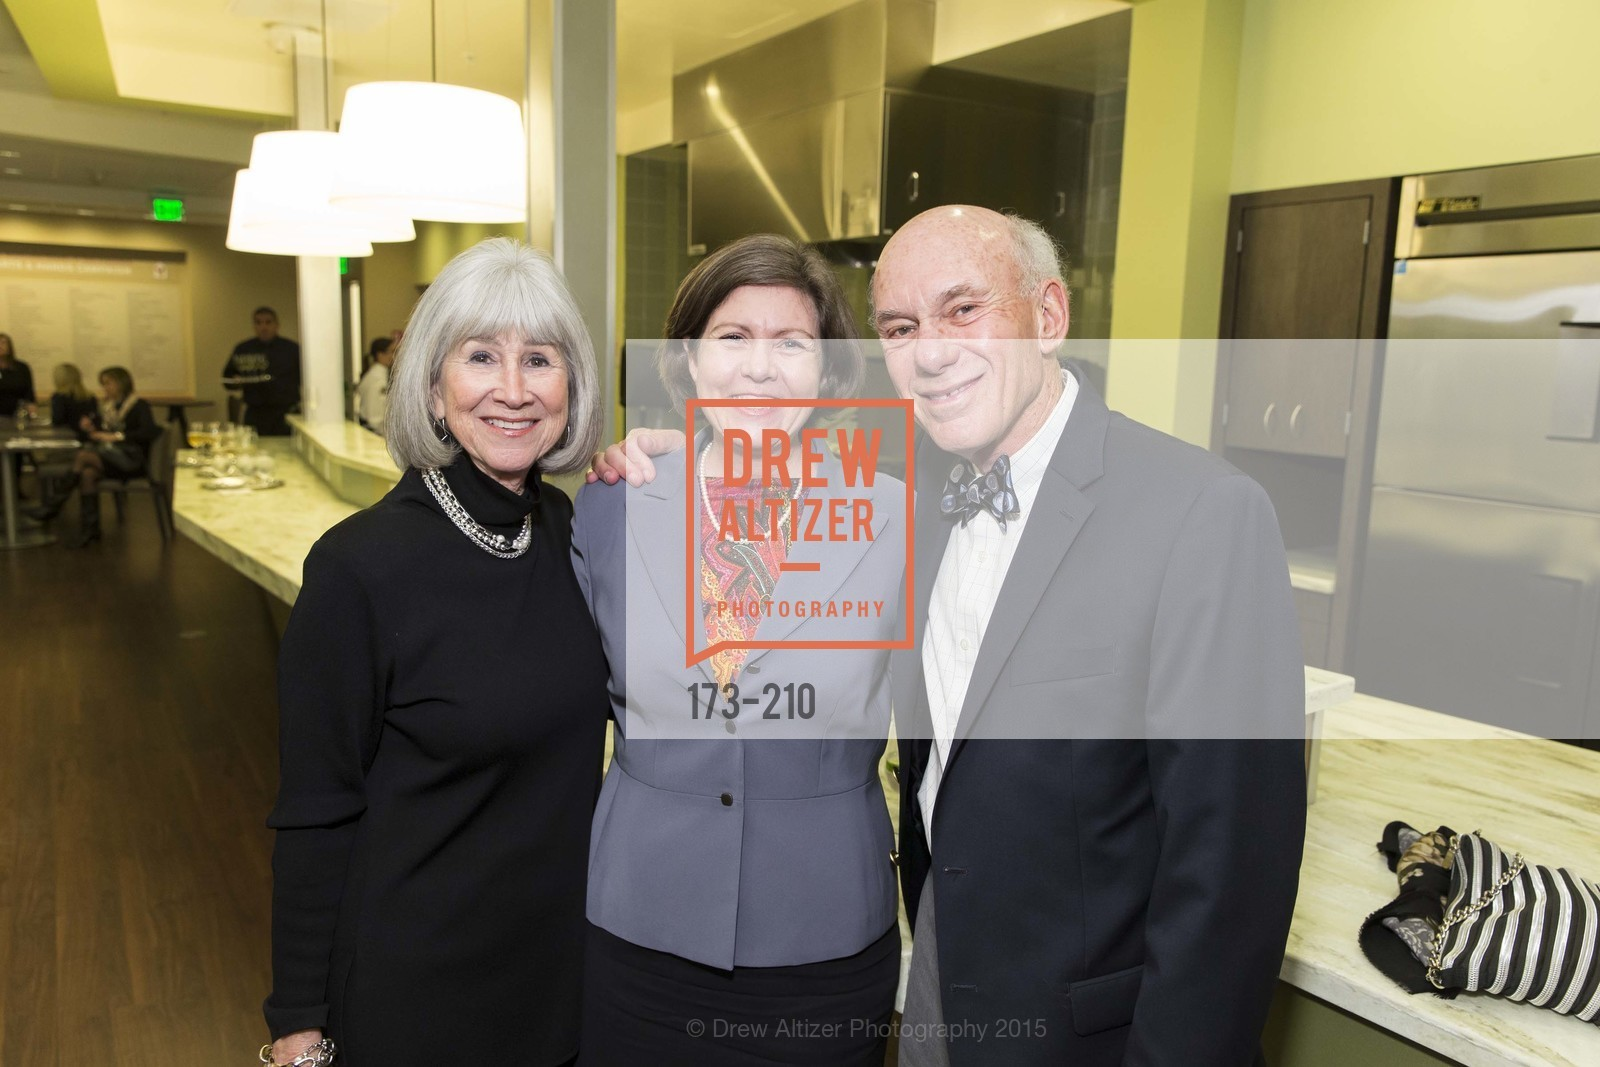 Deana Freedman, Ellen Raboin, Harvey Freedman, Ronald McDonald House of San Francisco - Donor Appreciation Reception, UCSF Benioff Children's Hospital San Francisco, January 20th, 2015,Drew Altizer, Drew Altizer Photography, full-service agency, private events, San Francisco photographer, photographer california